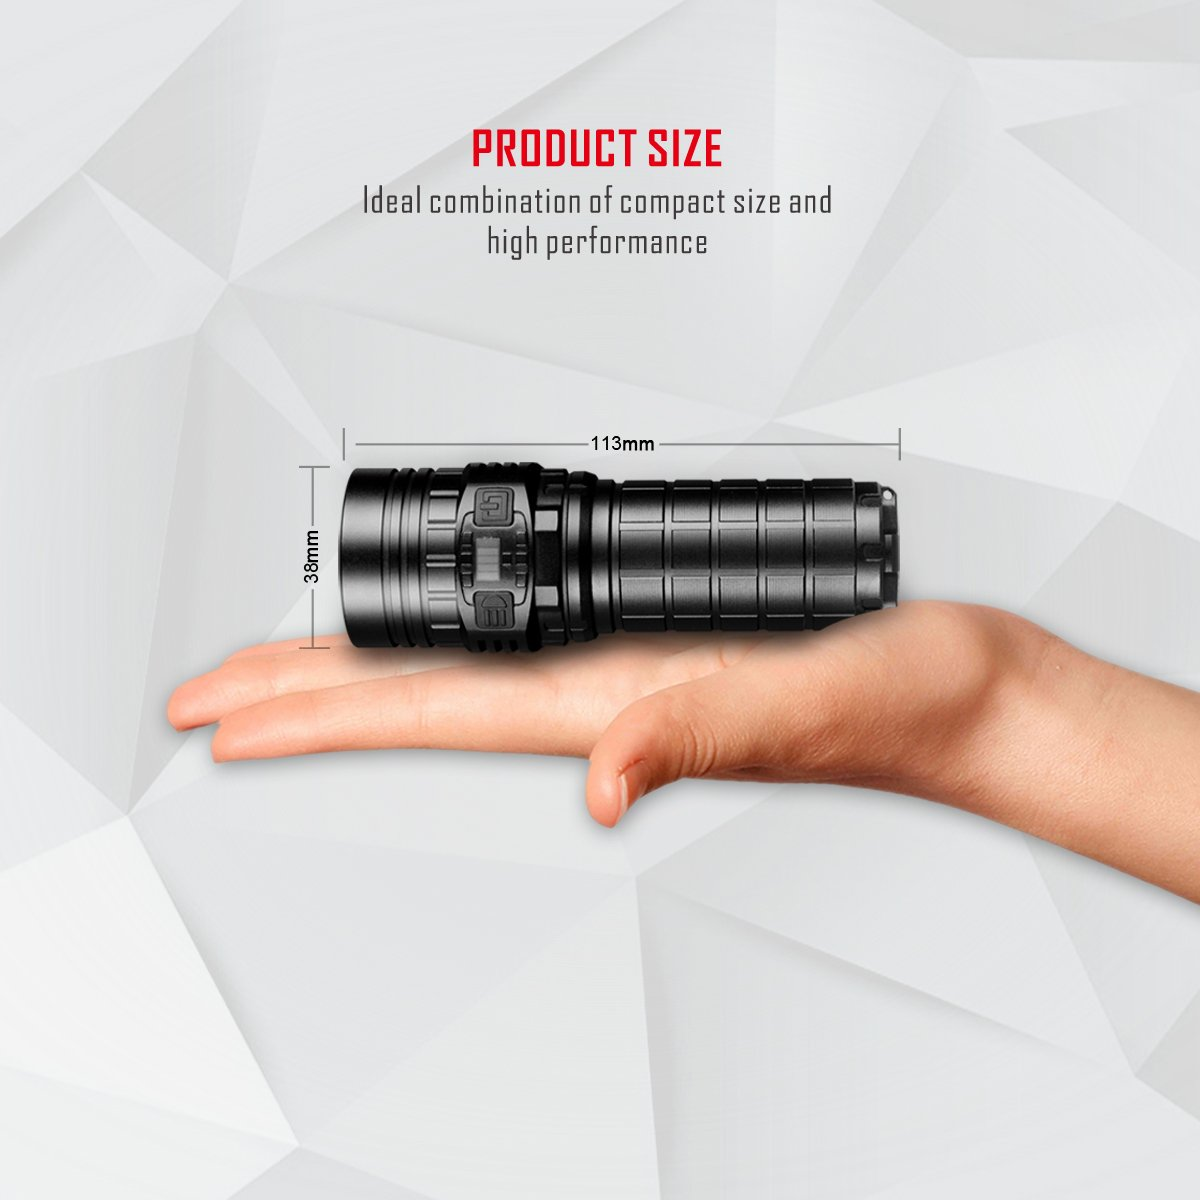 Imalent new DN70 USB rechargeable palm-sized LED flashlight 3800lumens searching light portable floody flashlight with CREE XHP70 LED by IMALENT (Image #6)